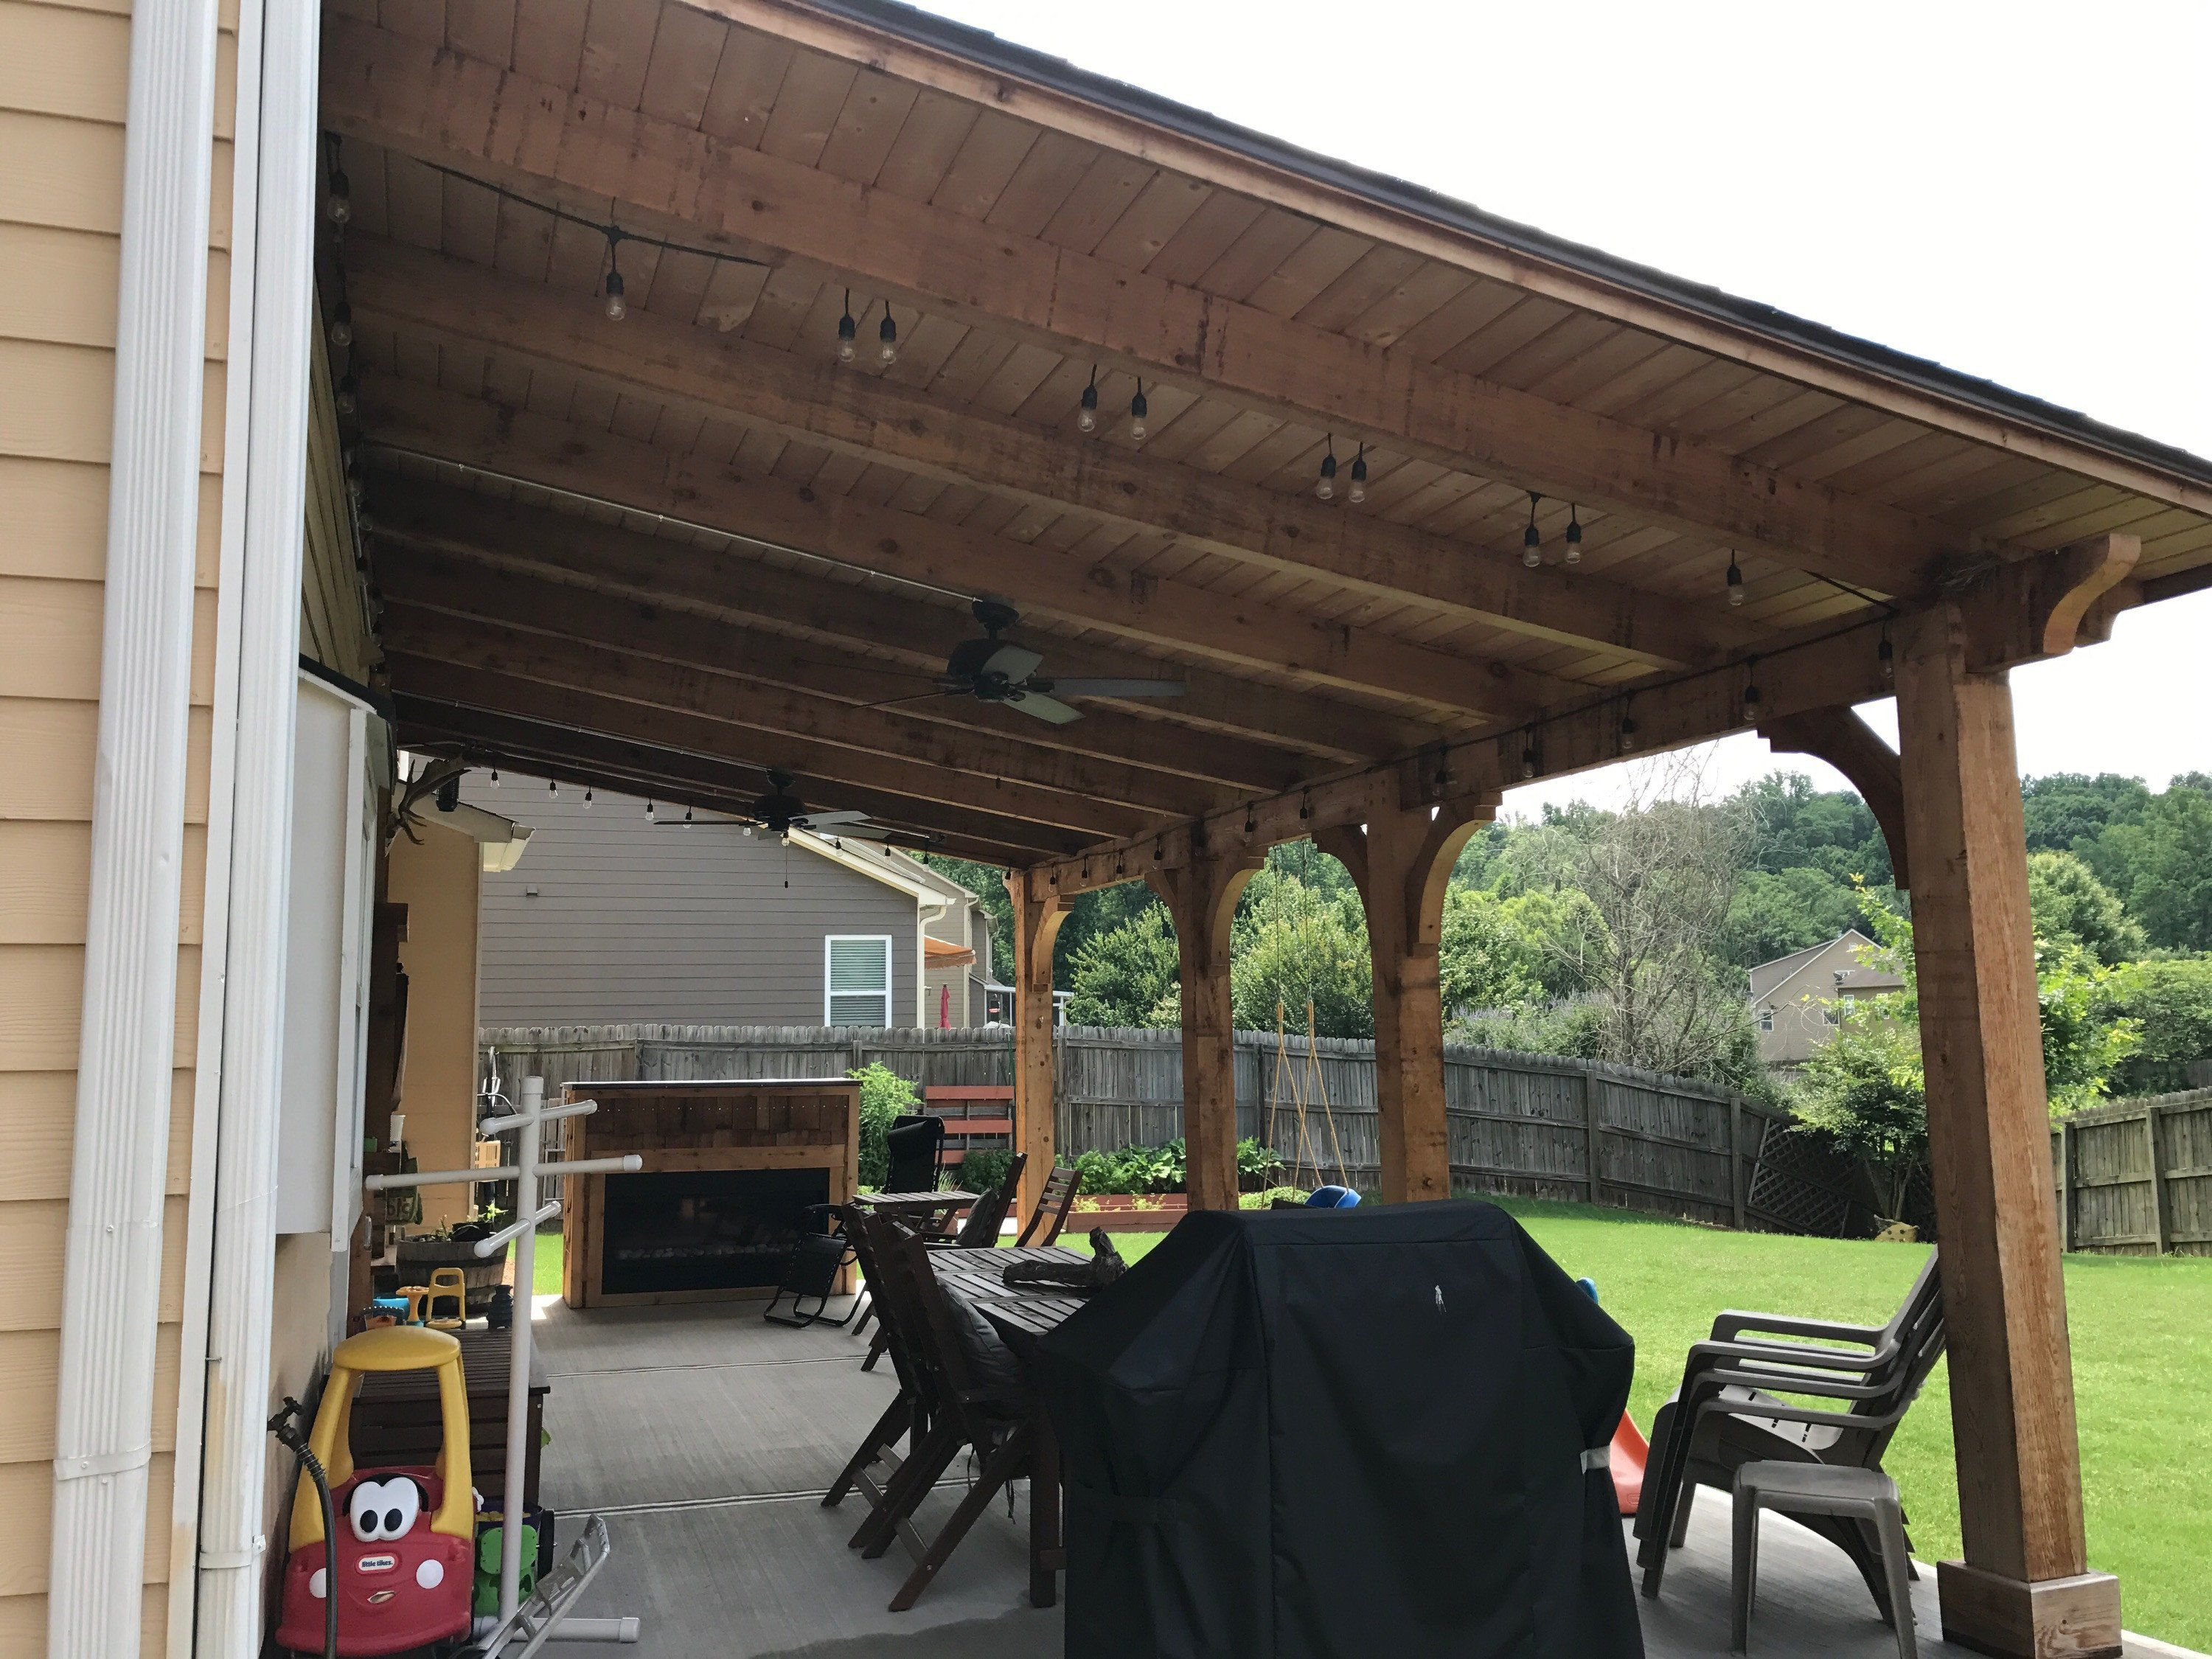 Shed Roof Awnings Porch Roof Design Patio Awning Patio Roof